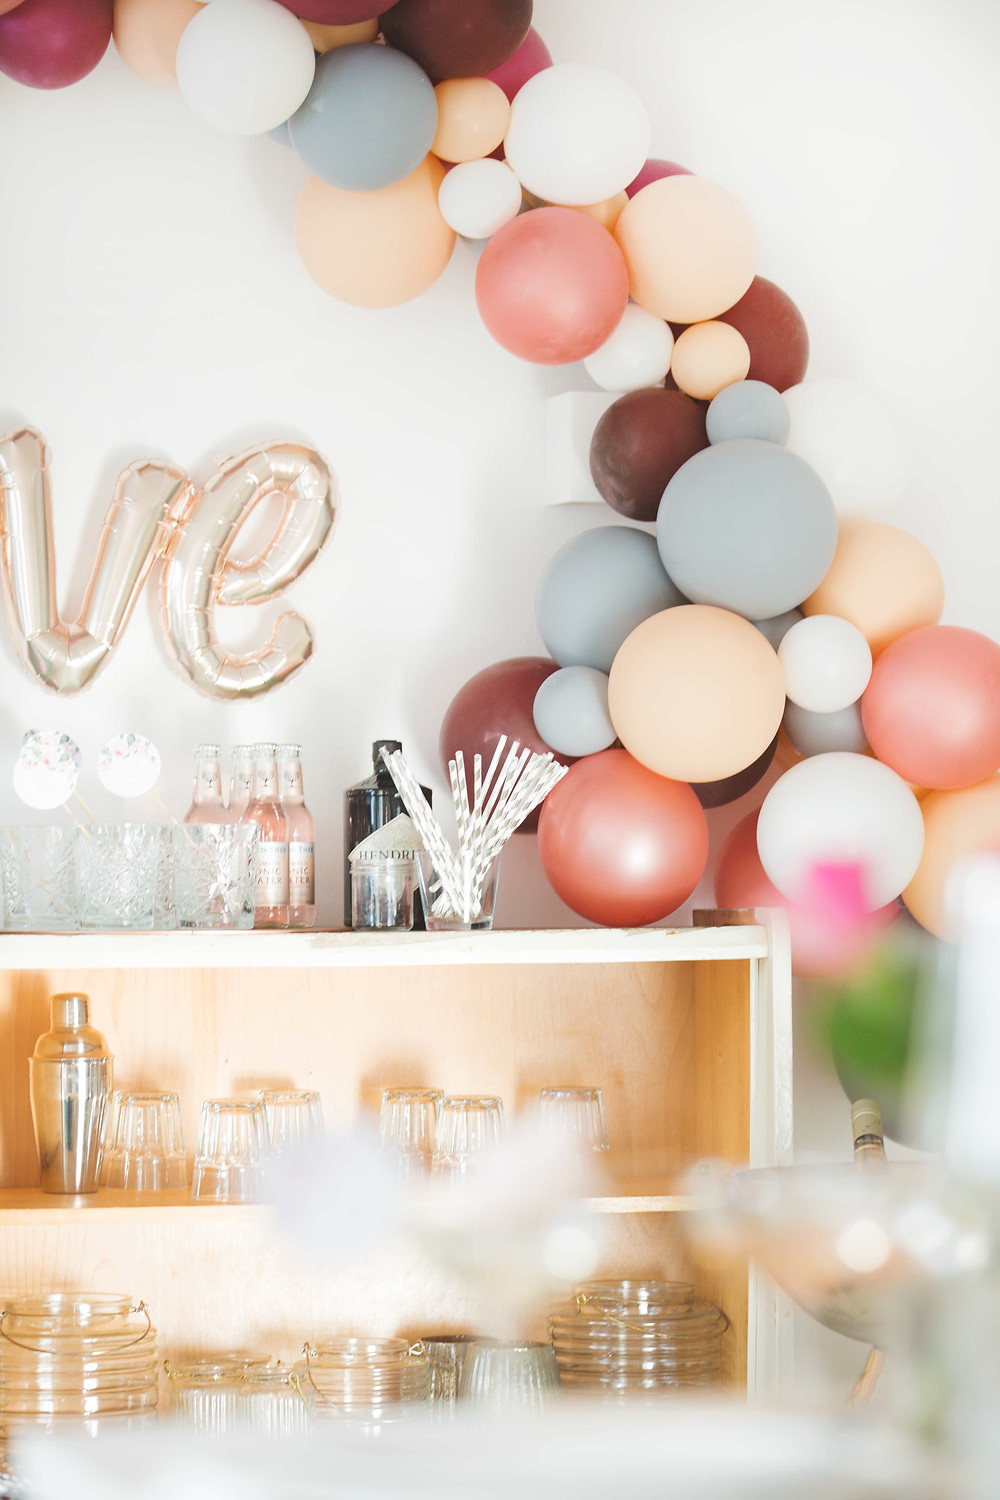 Roségoldene Party, Rosé-Party, Love, Braut Party, Baby Party, Geburtstagsparty, Partydeko, Party aus der Box, Partyidee